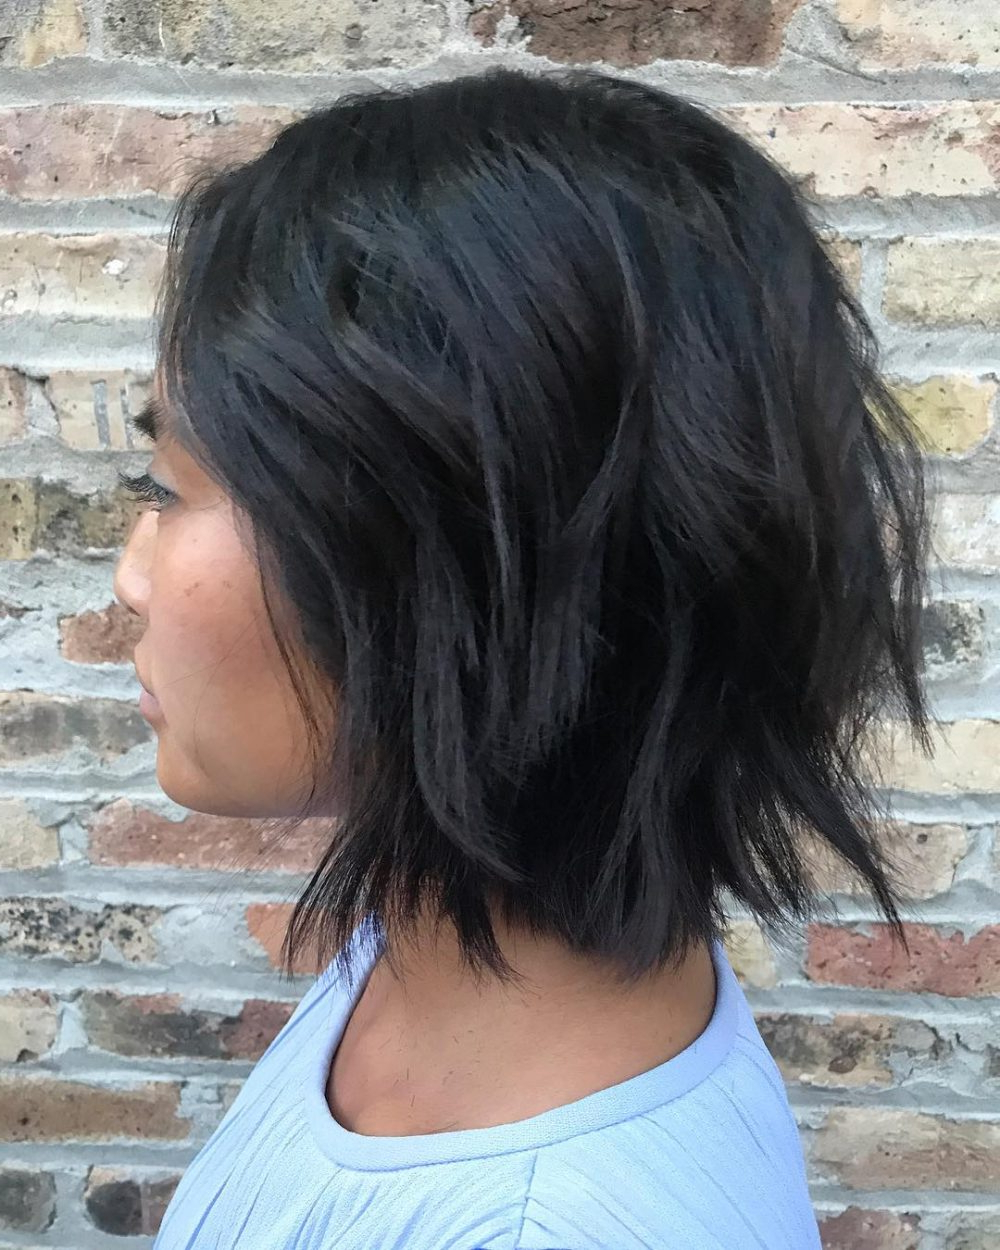 100 Hottest Choppy Bob Hairstyles For Women In 2019 Throughout Current Black Angled Bob Hairstyles With Shaggy Layers (View 4 of 20)